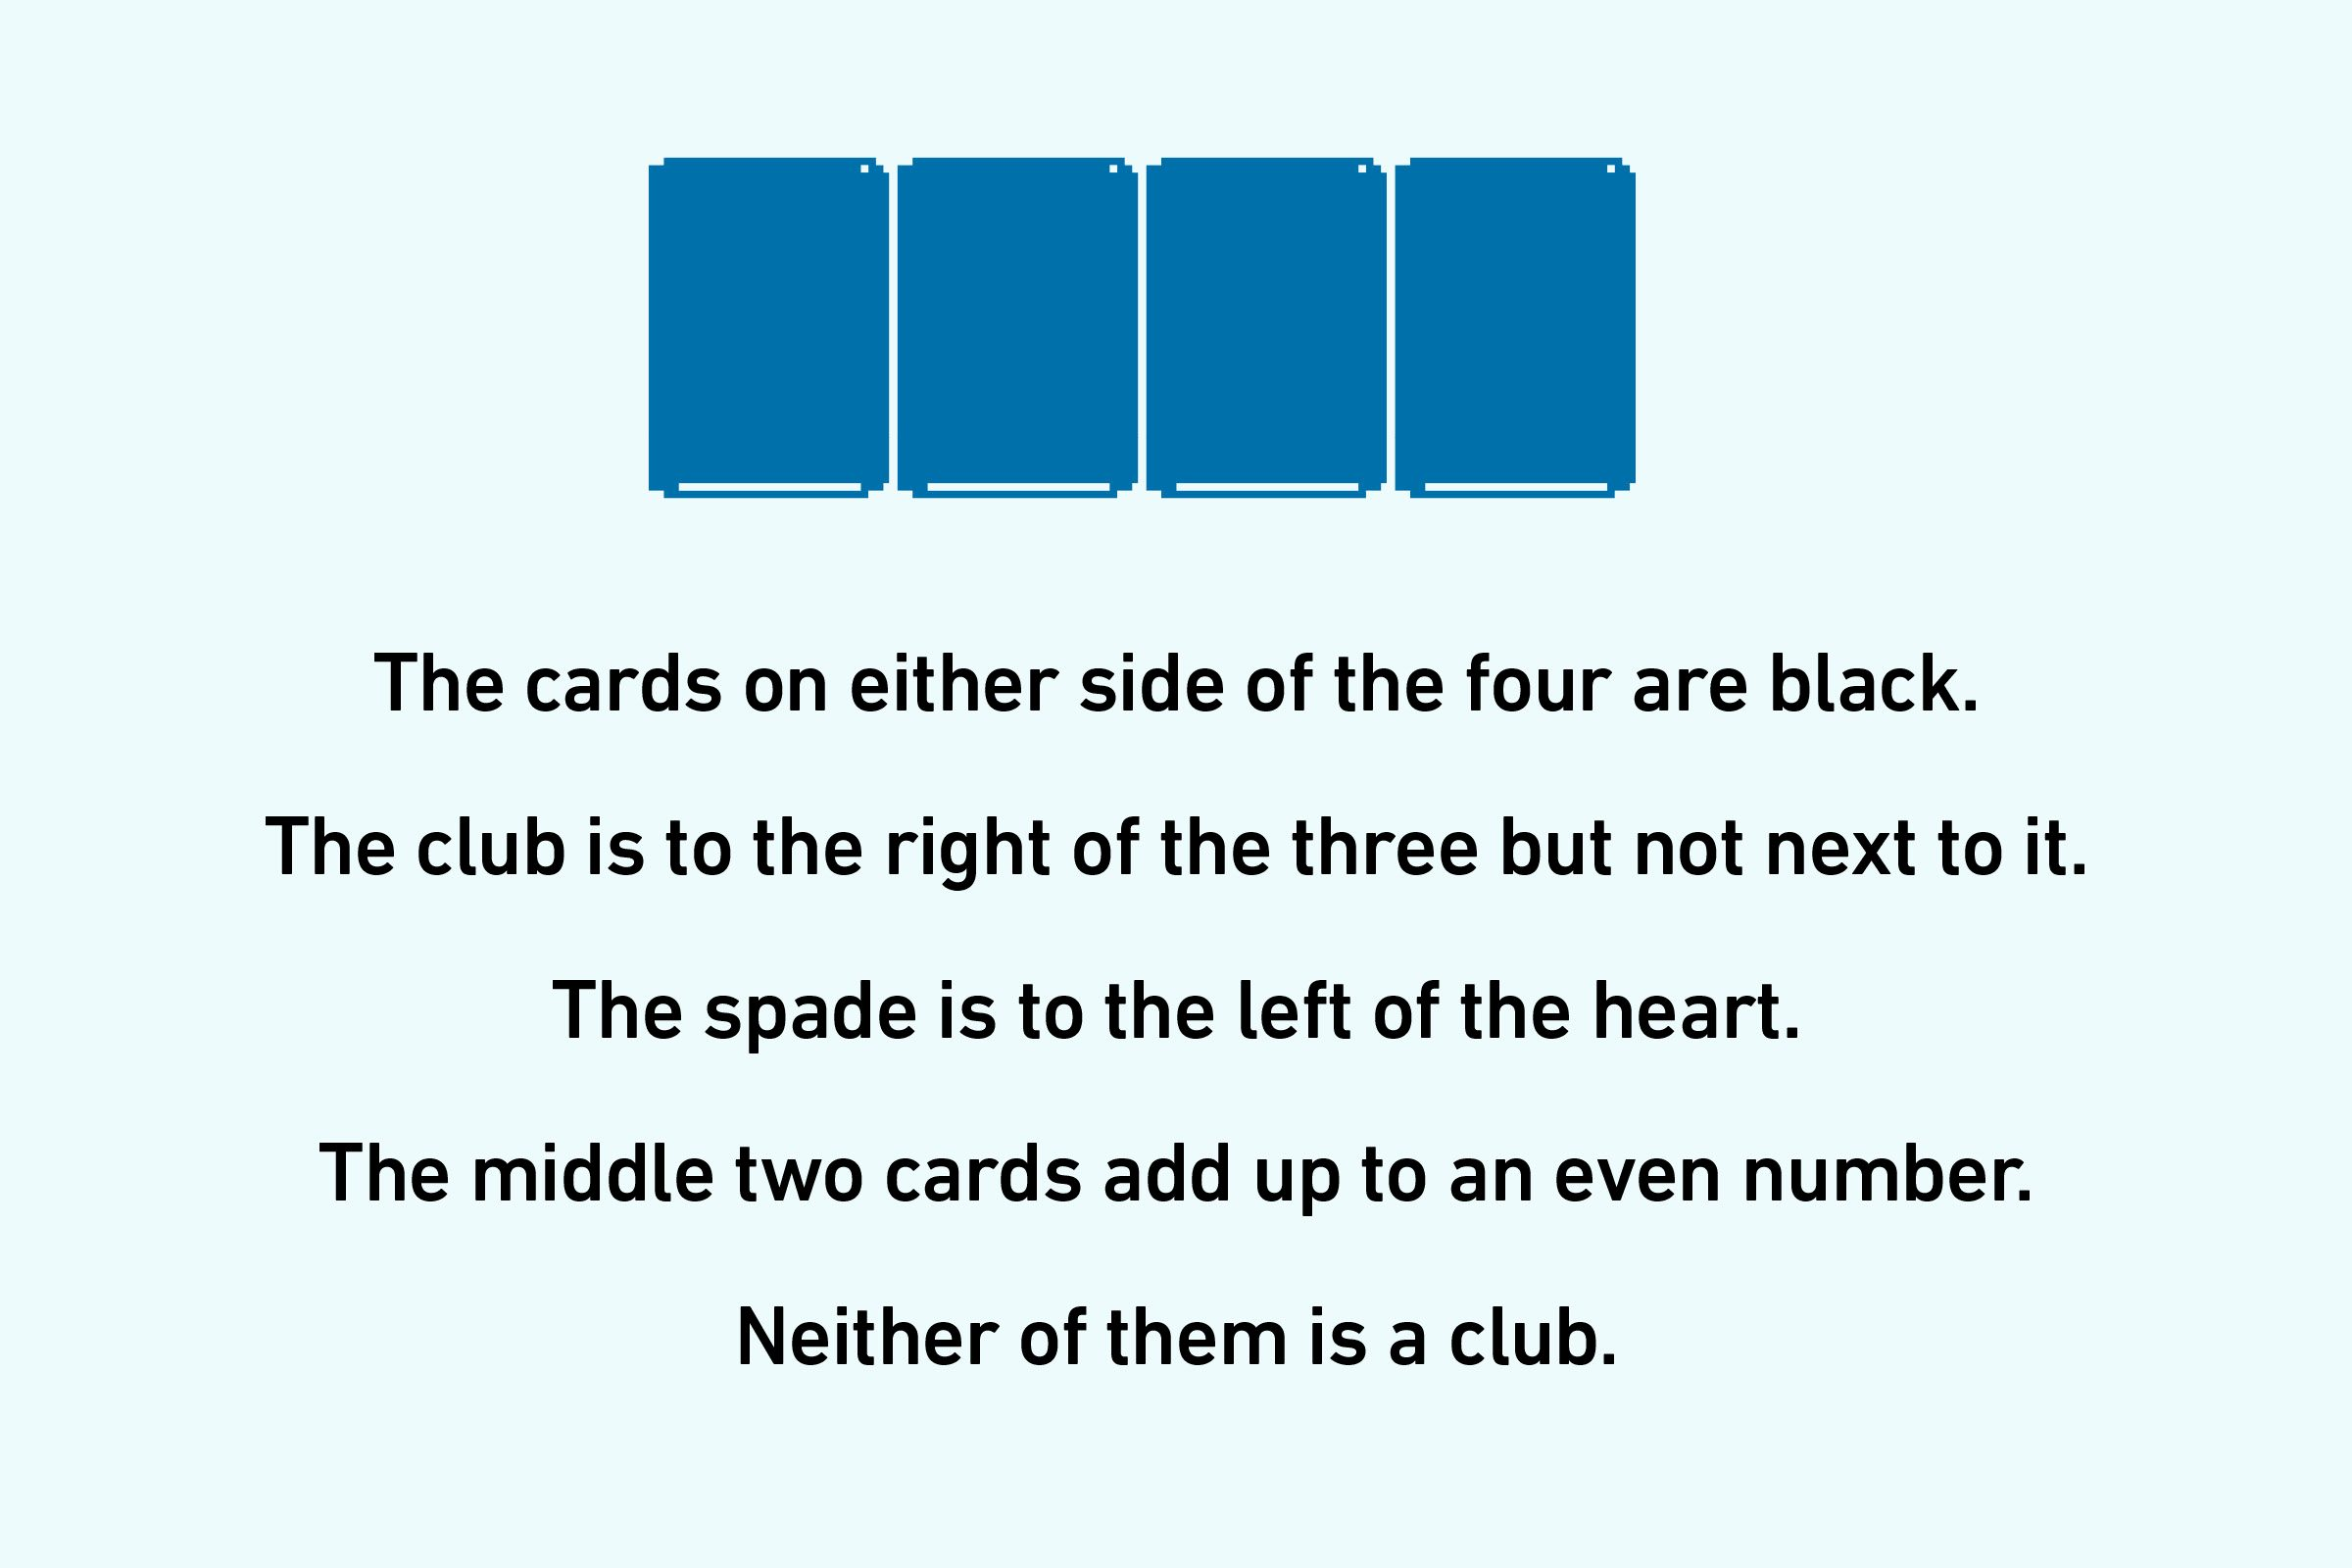 Four playing cards, one of each suit, lie in a row on a table. They are a three, a four, a five, and a six. Using these clues, can you determine the cards' suits and their order?